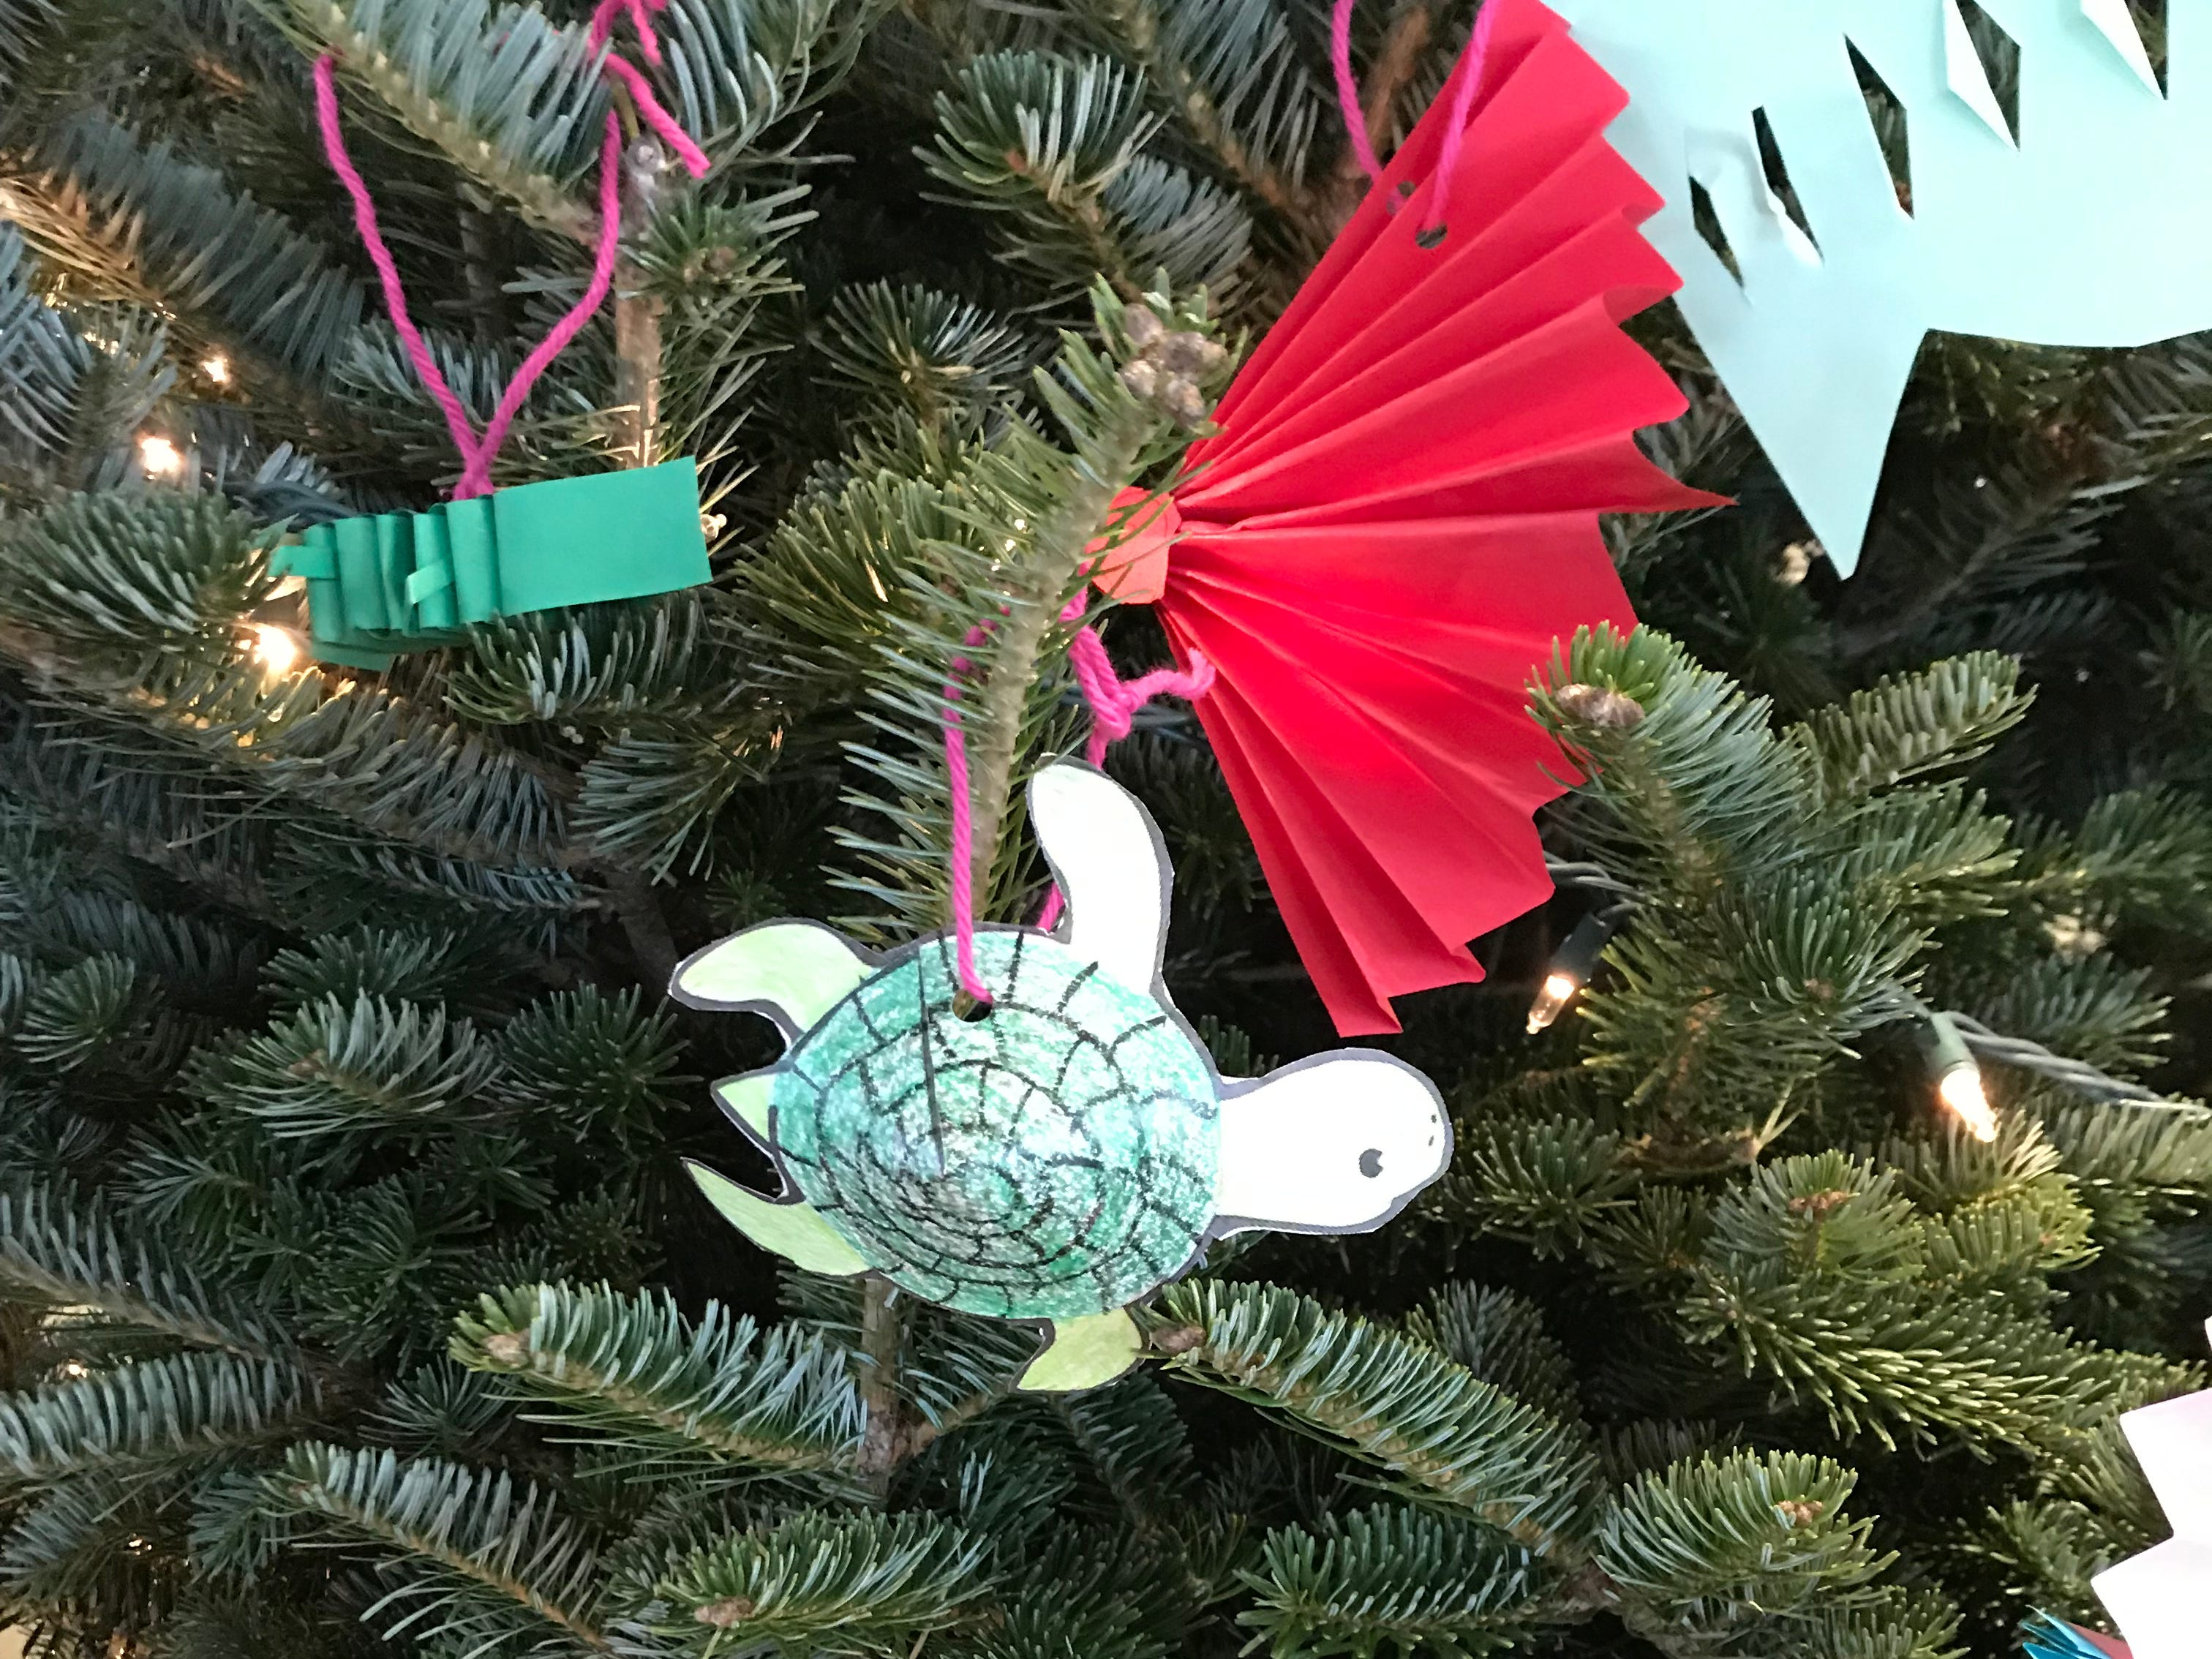 Many creative ornaments can be made from paper, including turtles and fans like these by Divine Mercy Elementary on display at the Milwaukee County Zoo.